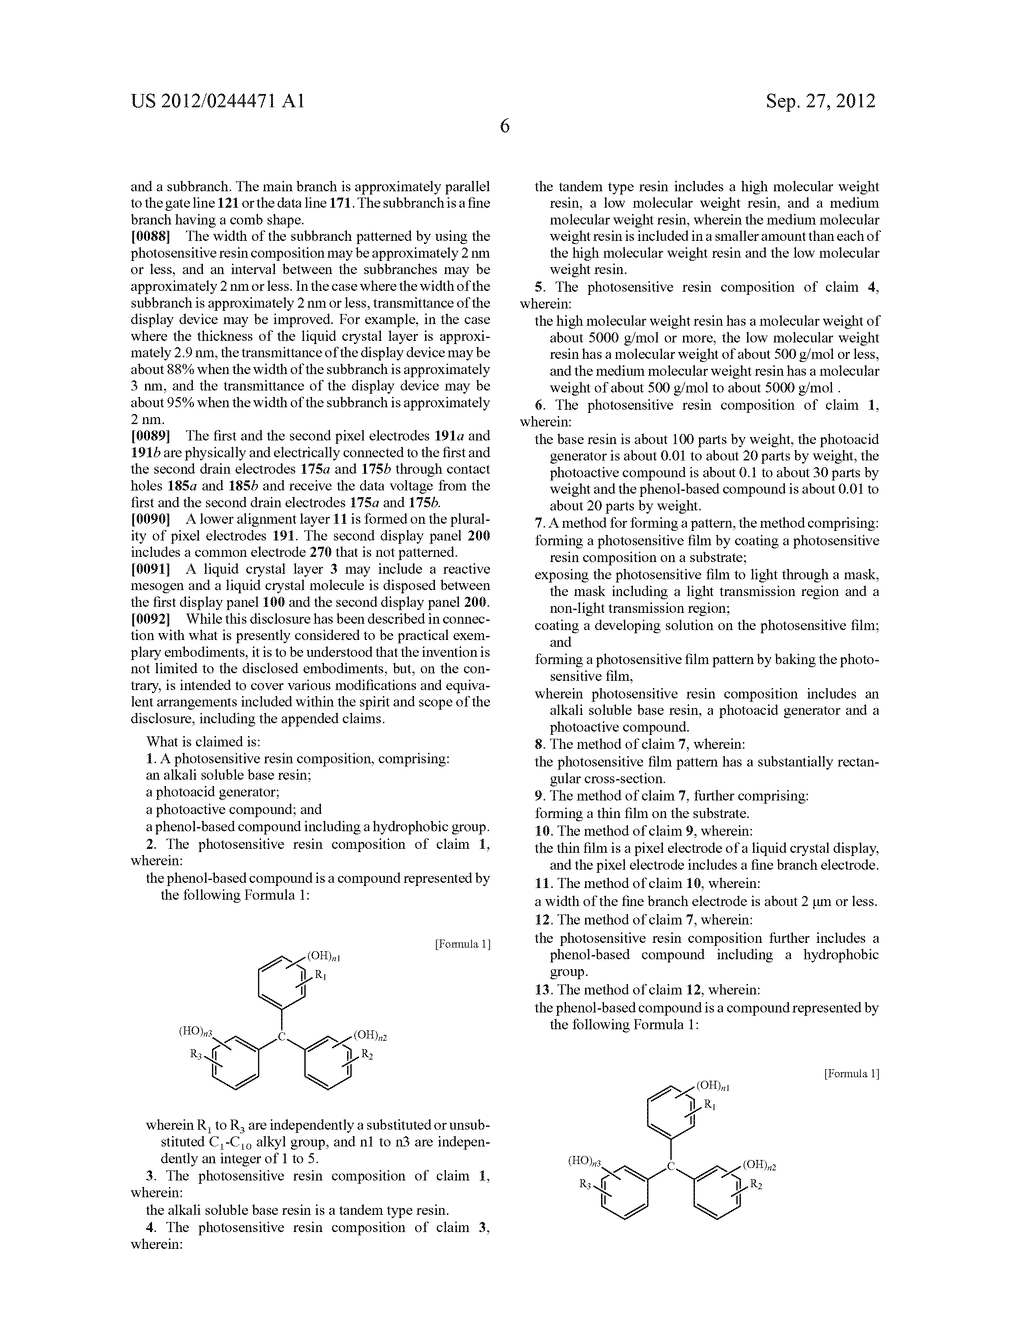 PHOTORESIST RESIN COMPOSITION AND METHOD OF FORMING PATTERNS BY USING THE     SAME - diagram, schematic, and image 16